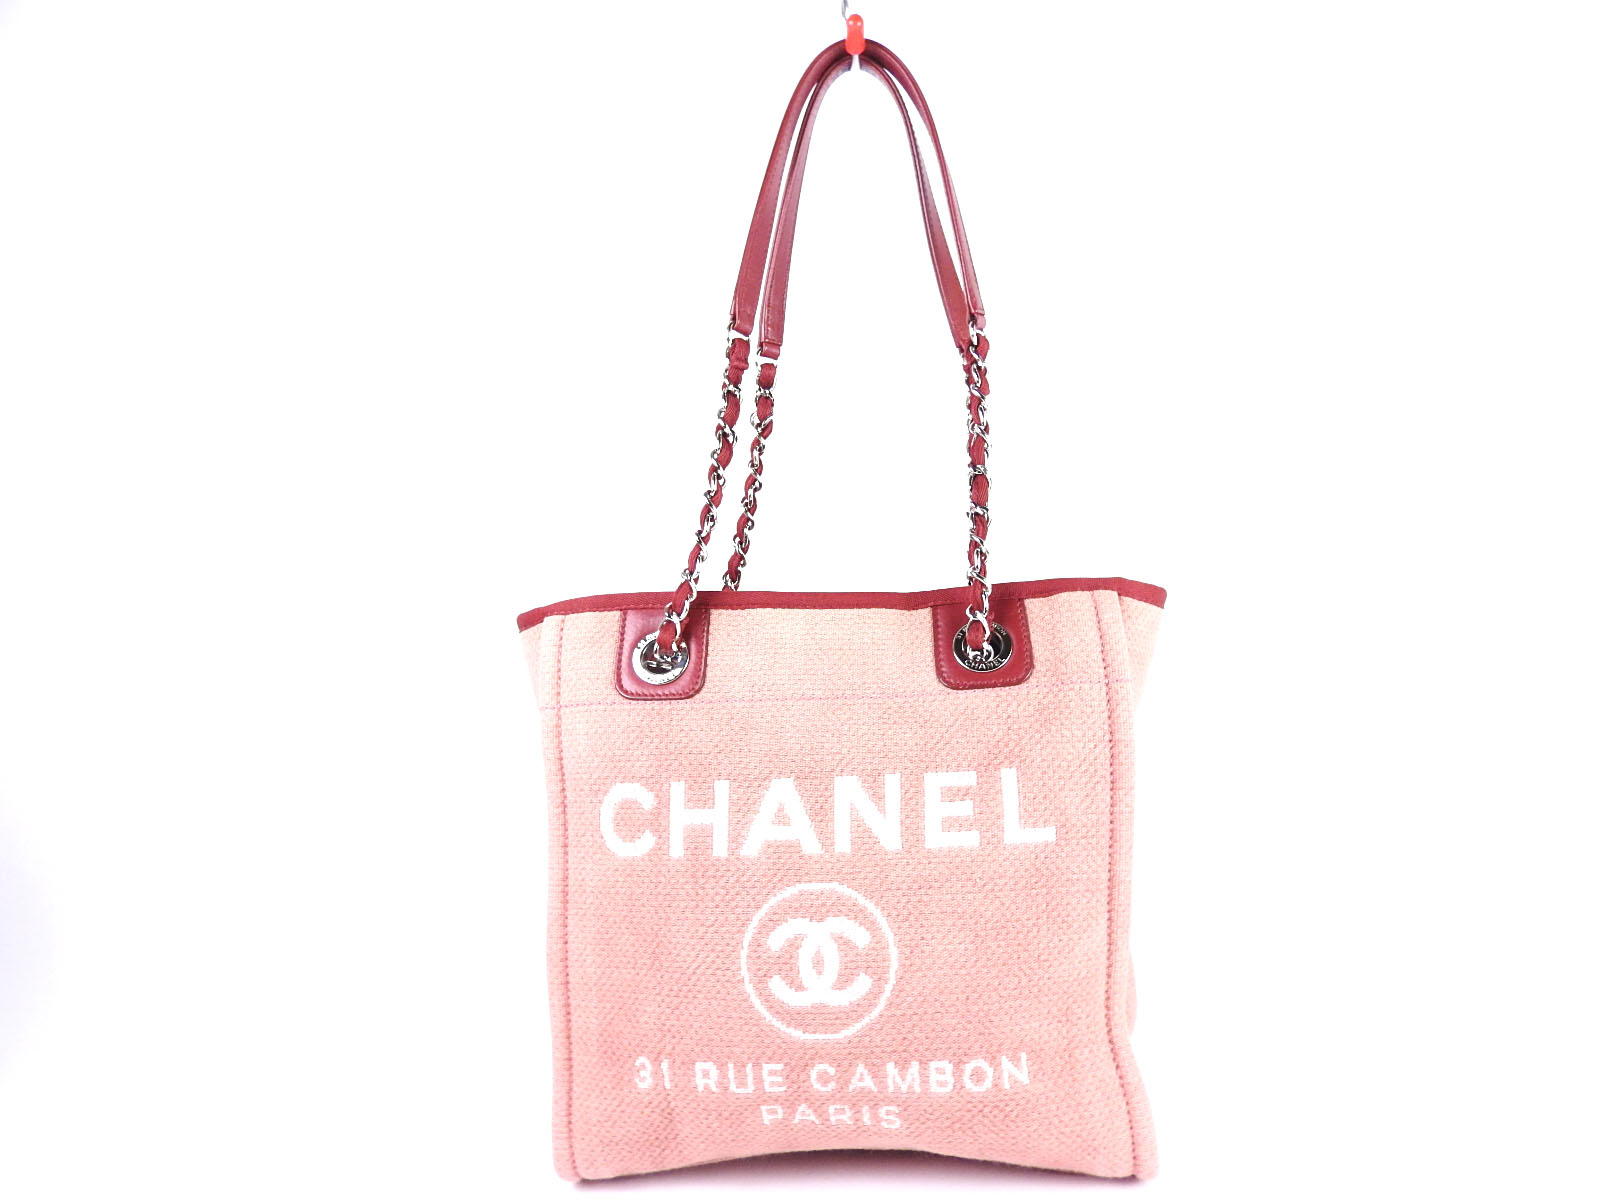 4424551afec322 Auth CHANEL Deauville PM CC Chain Shoulder Tote Bag Canvas Red Pink A66939  A4718 | eBay. Chanel Canvas Tote Shopping Bag 8099 ...